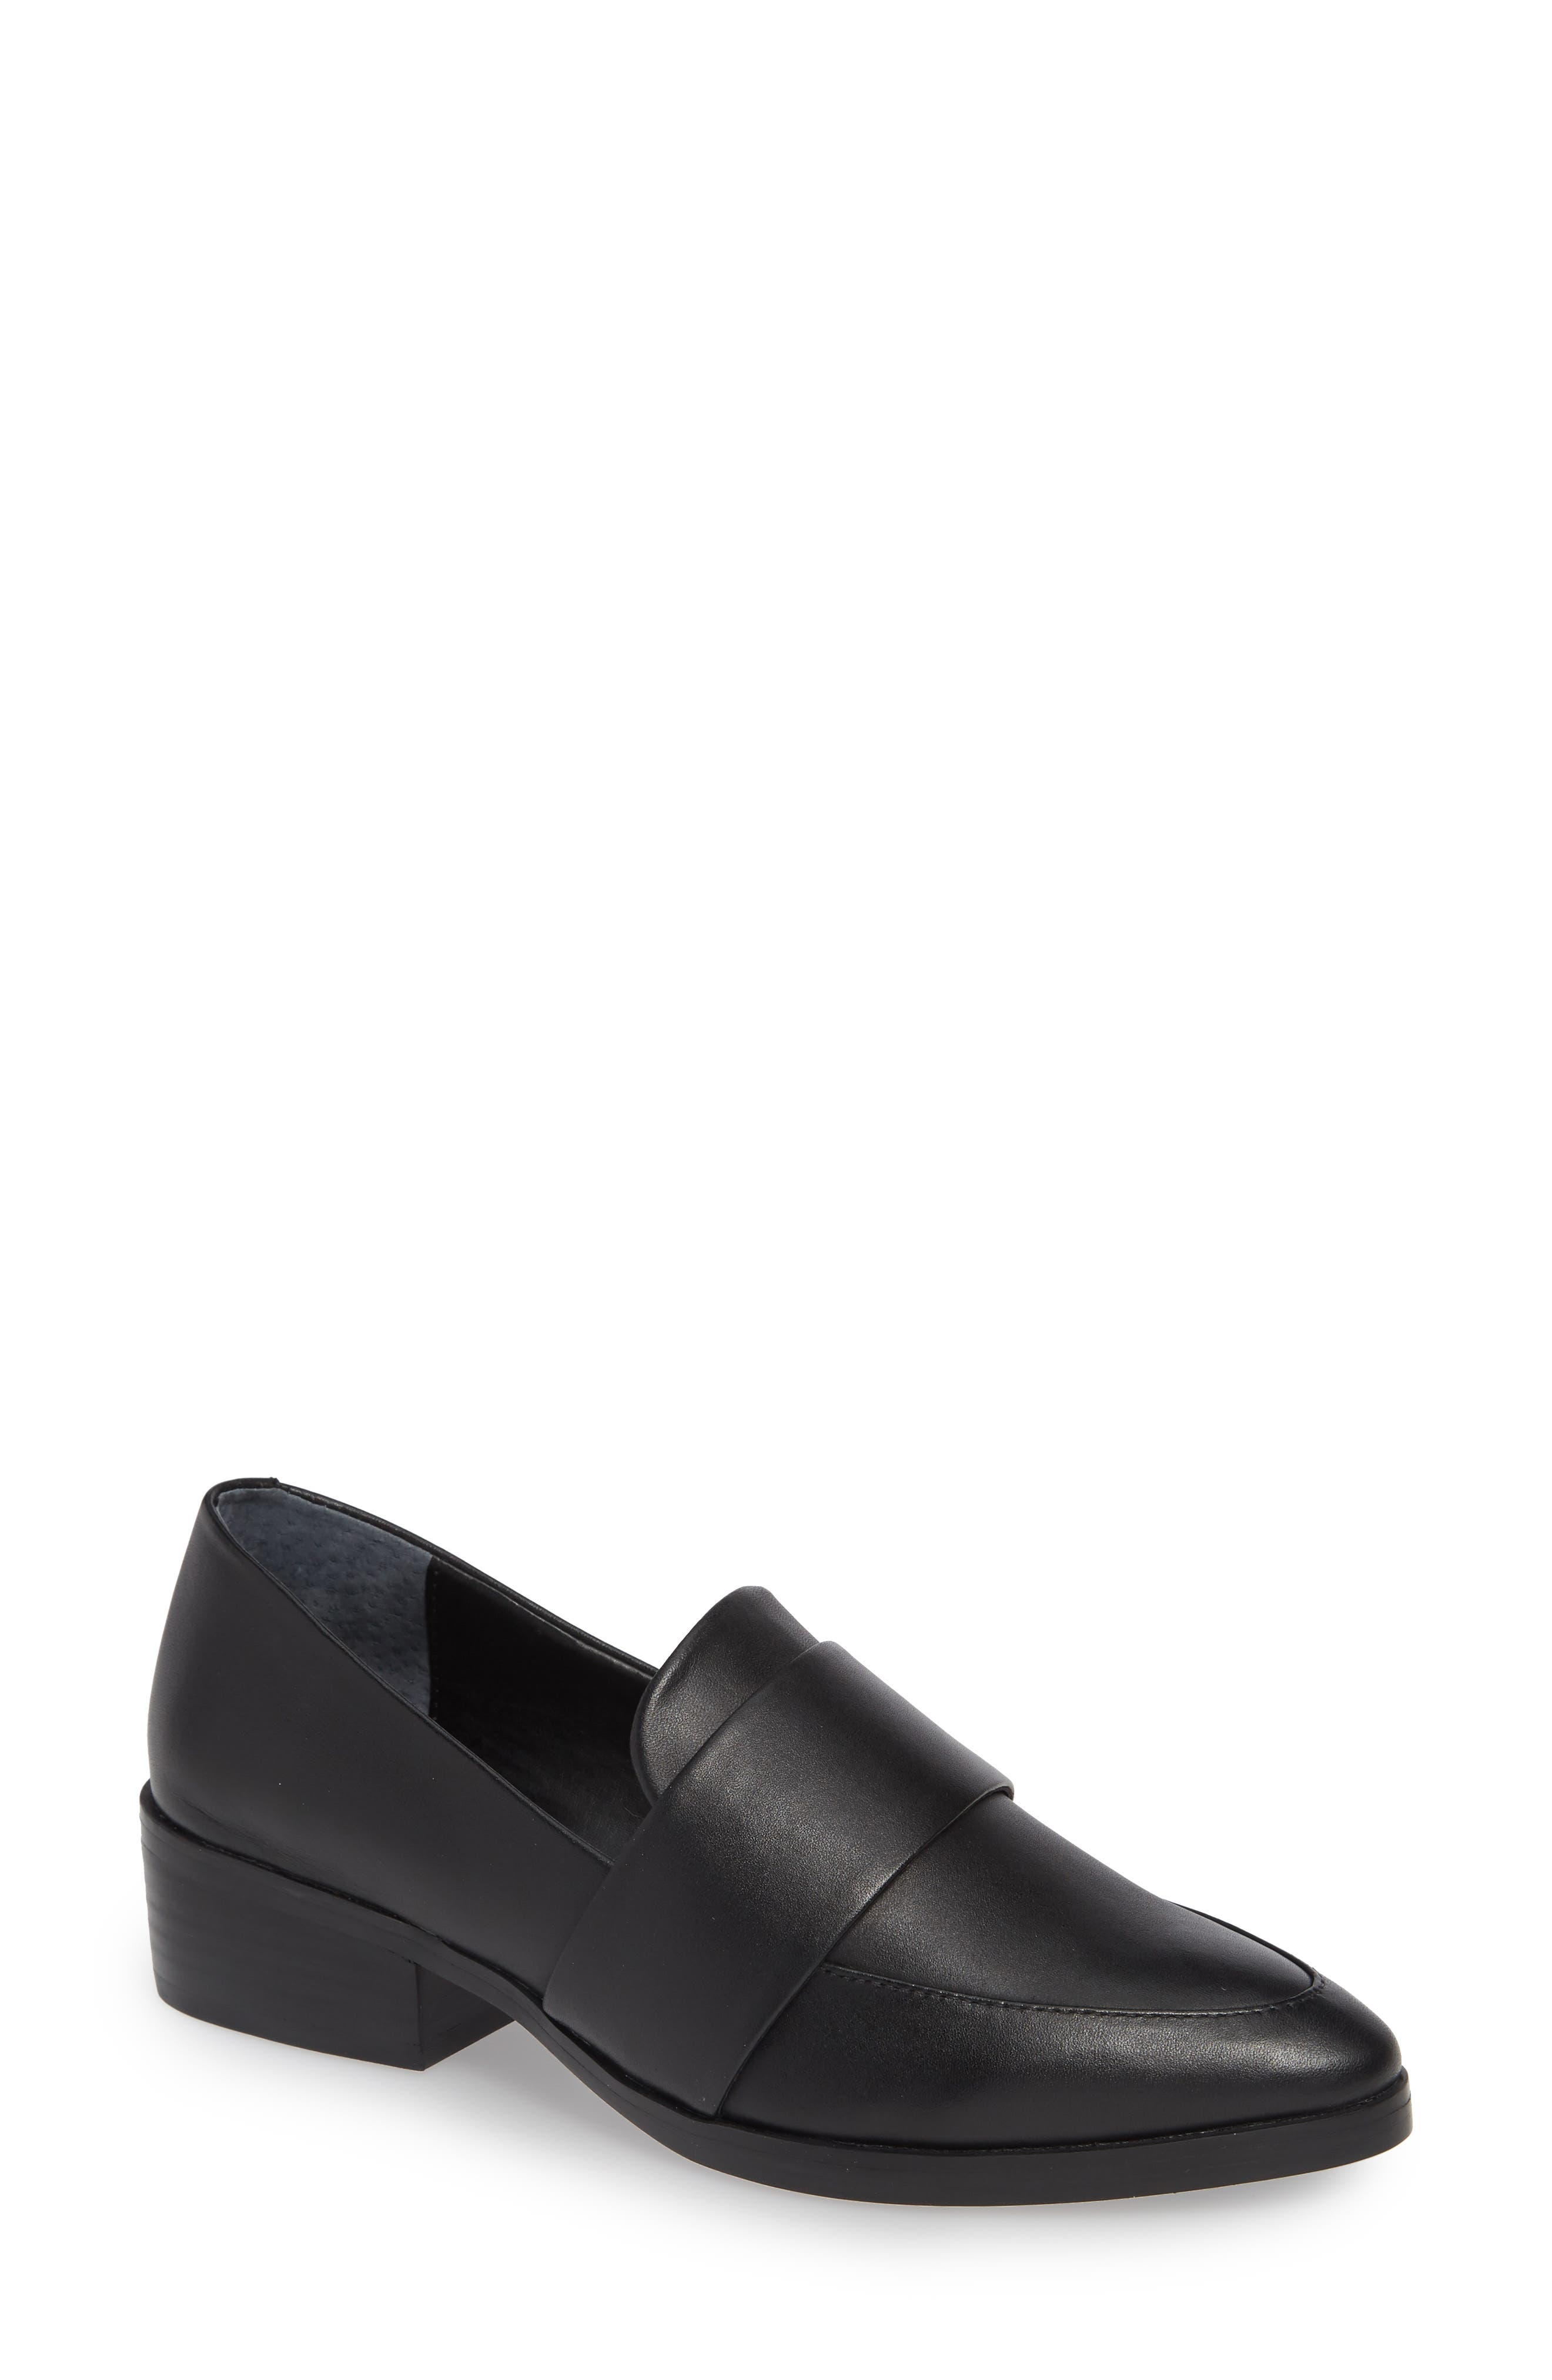 TONY BIANCO Mayfair Loafer, Main, color, BLACK LEATHER